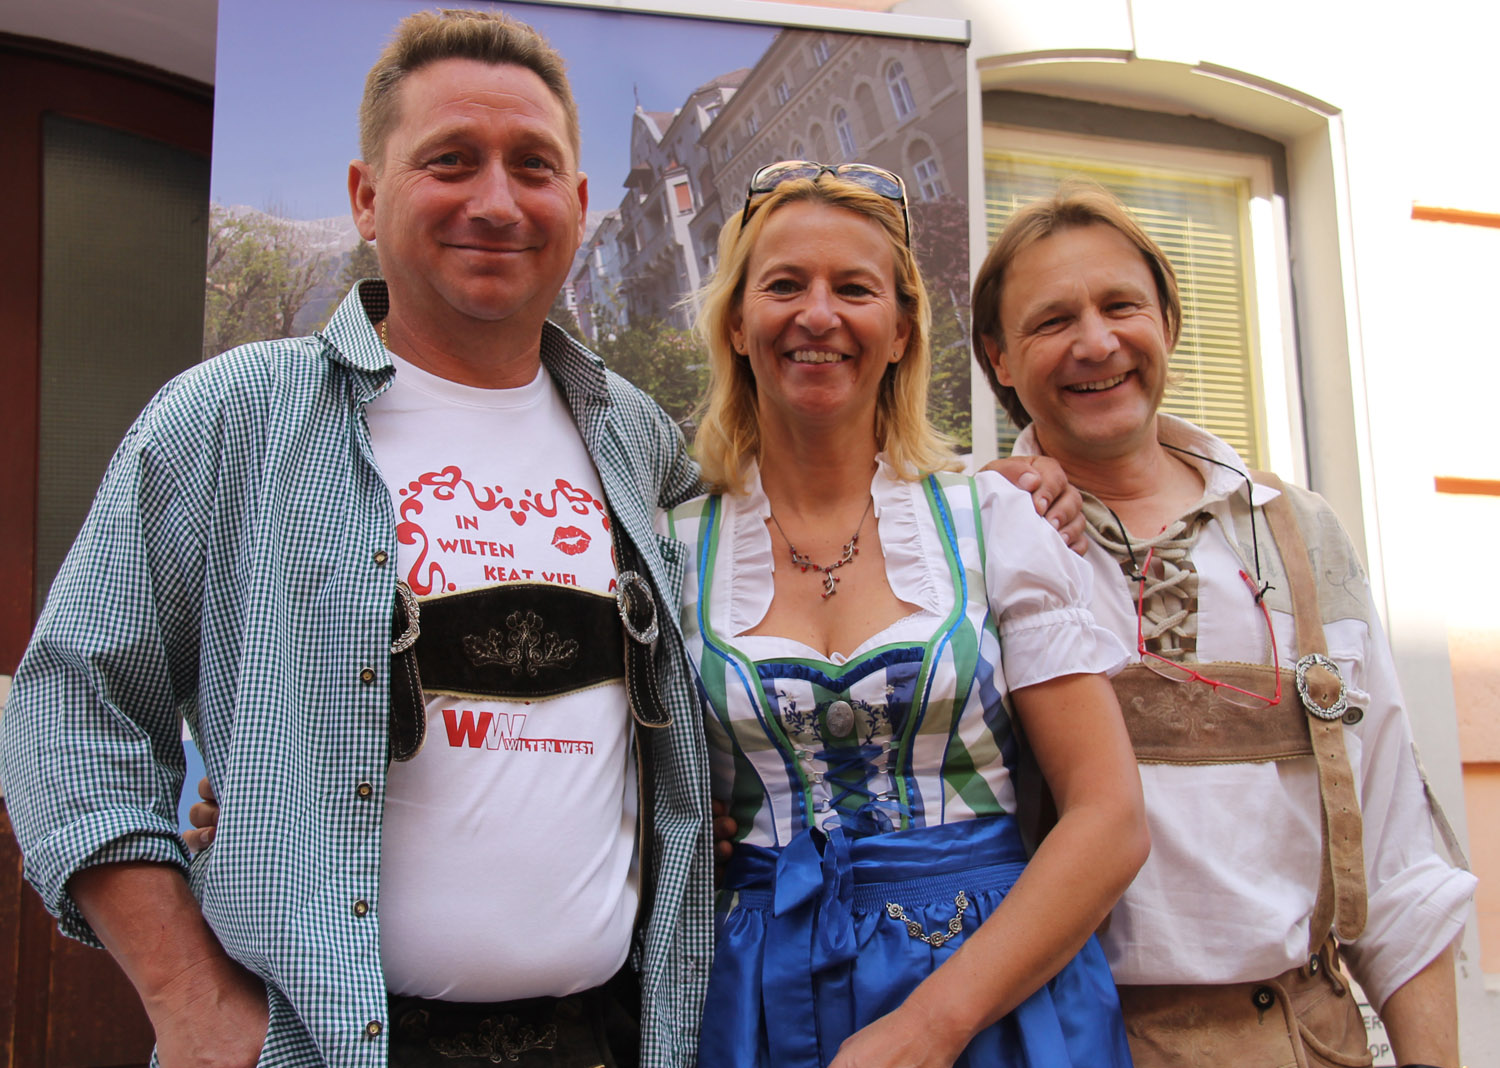 Das Oktoberfest des Marketingkreis Wilten West 2014 - 013